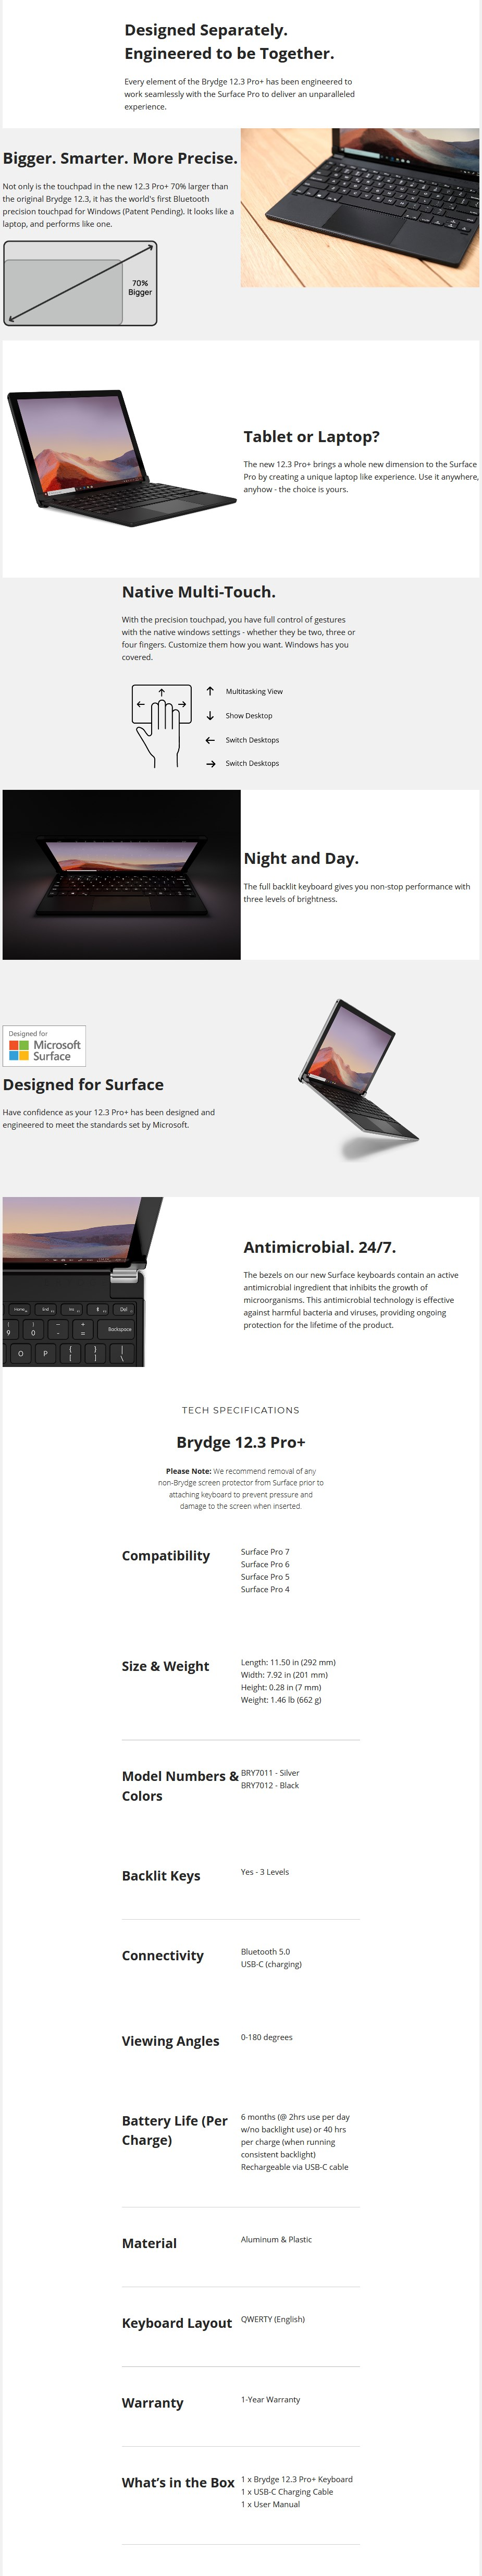 Brydge Pro Plus 12.3 Bluetooth Keyboard with Touchpad For Surface Pro - Silver - Overview 1